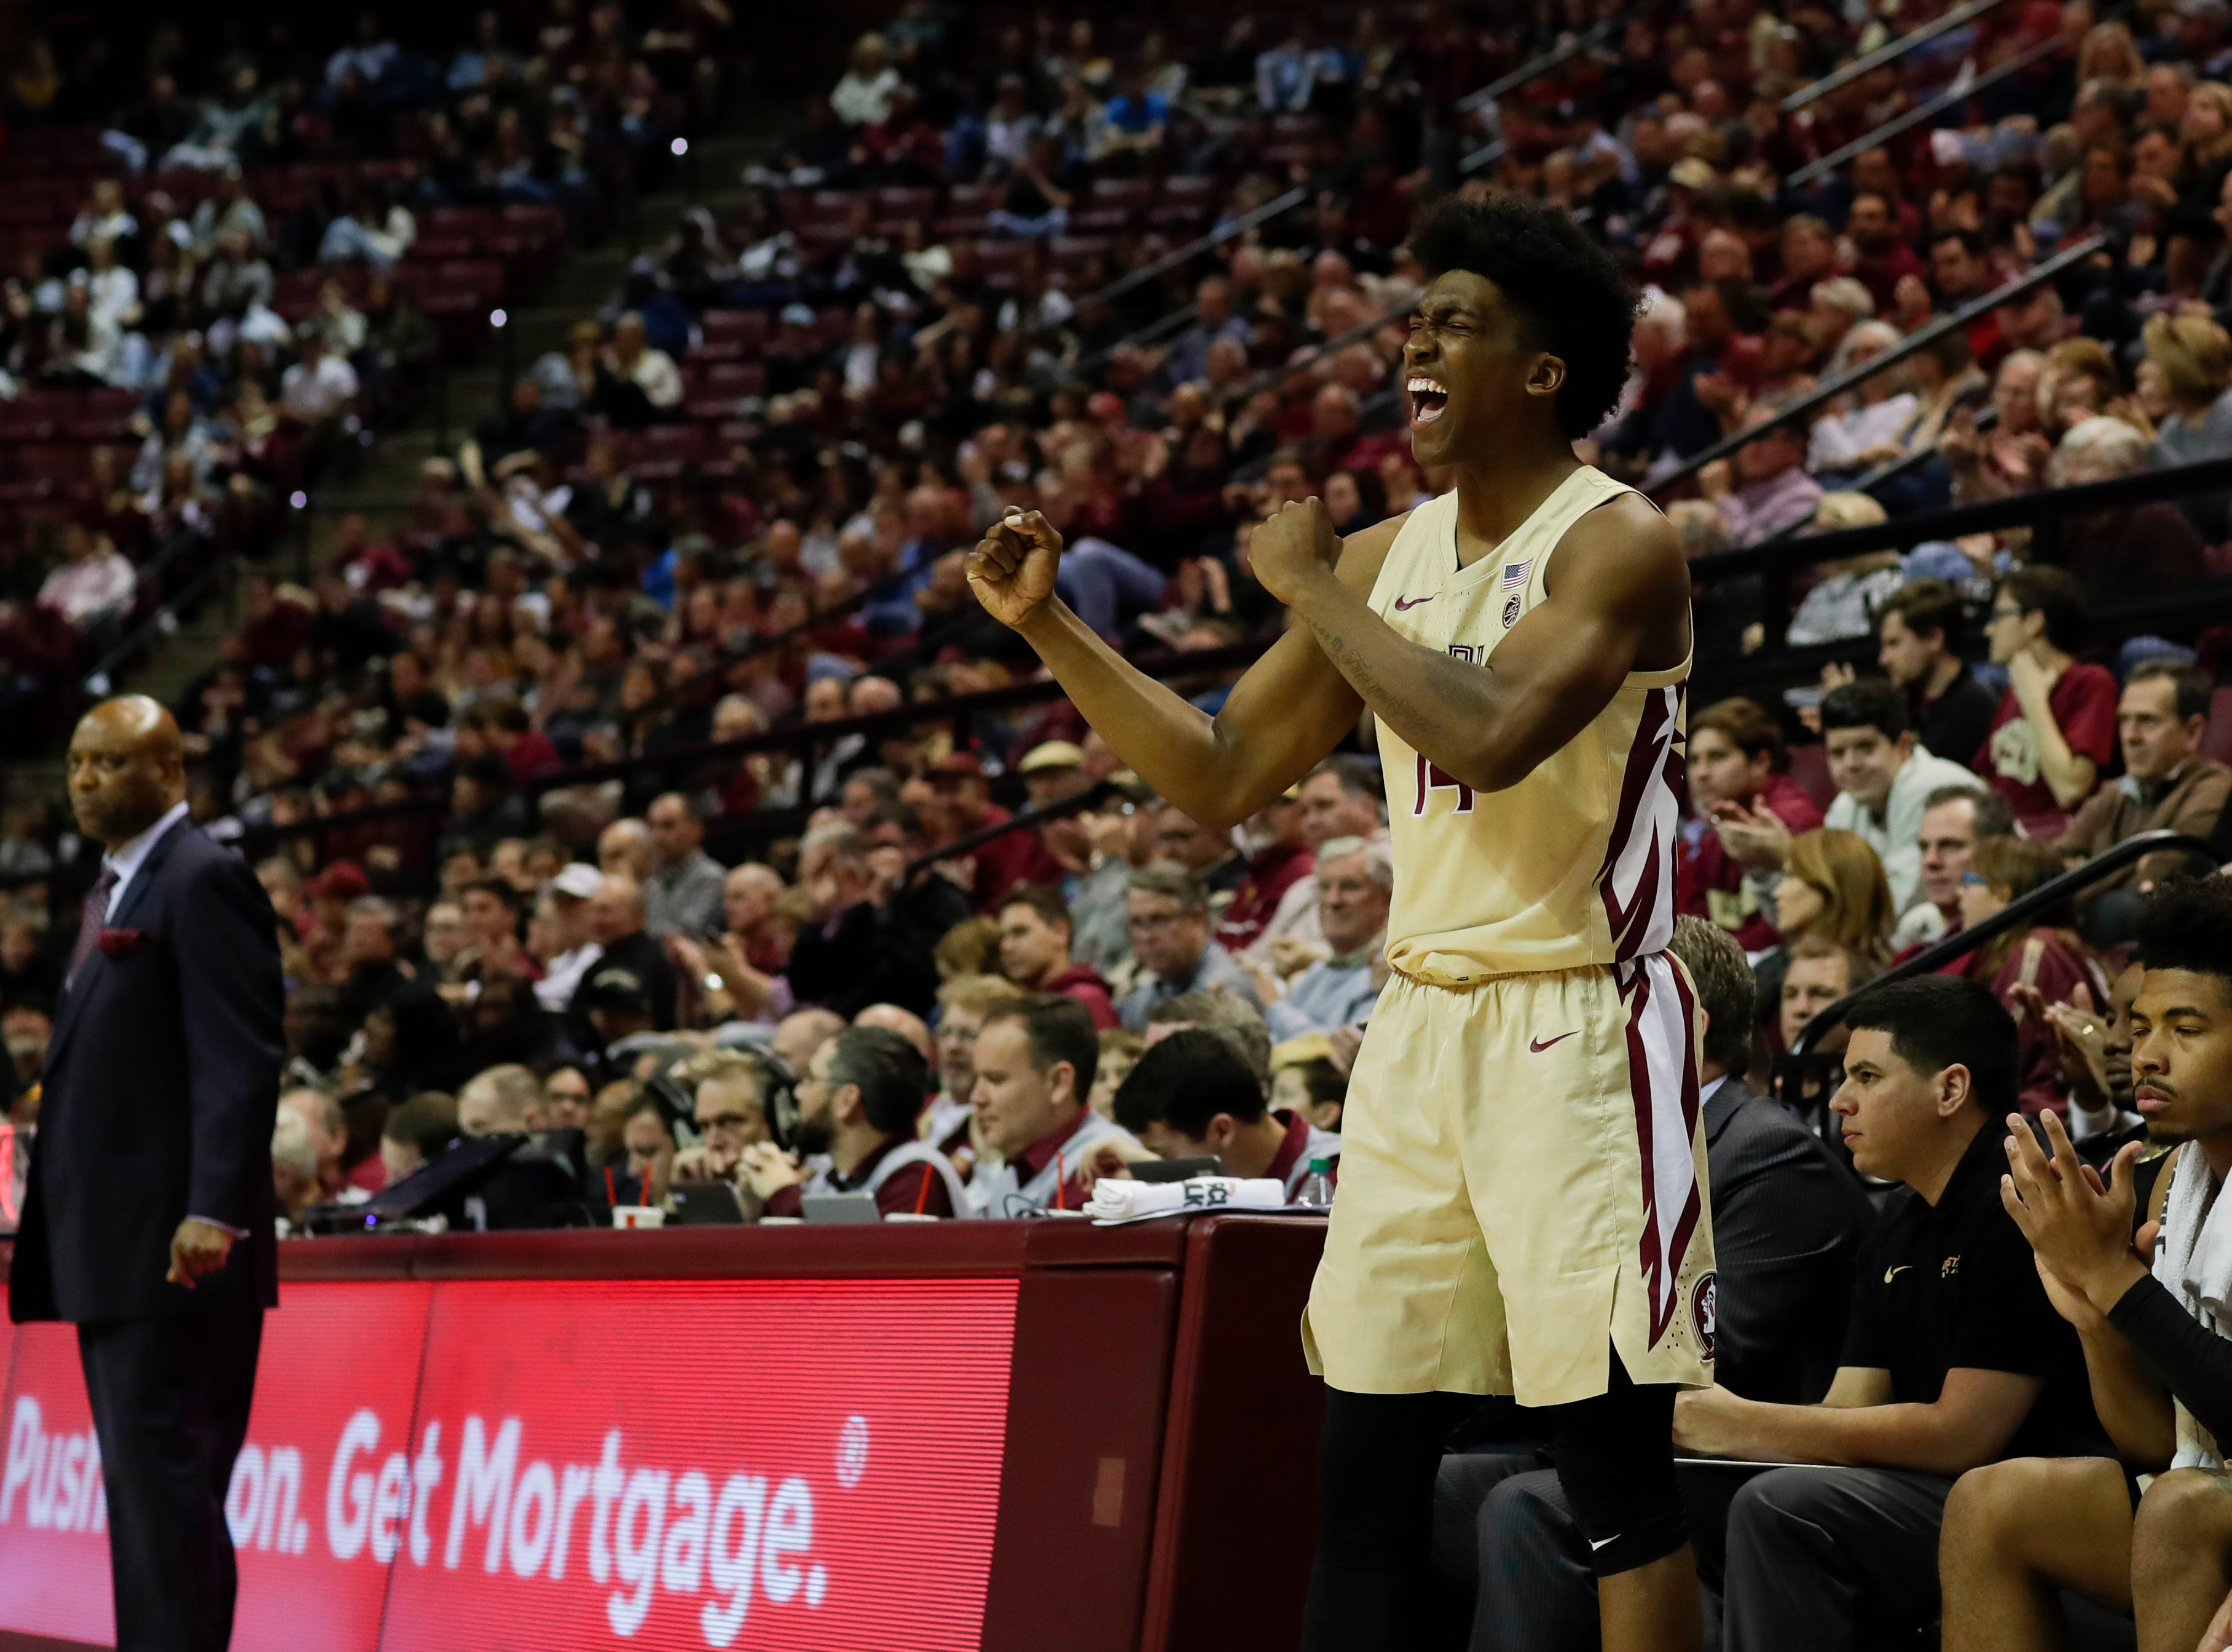 Florida State Seminoles guard Terance Mann (14) celebrates a Seminoles score during a game between FSU and Wake Forest at the Donald L. Tucker Civic Center Wednesday, Feb. 13, 2019.